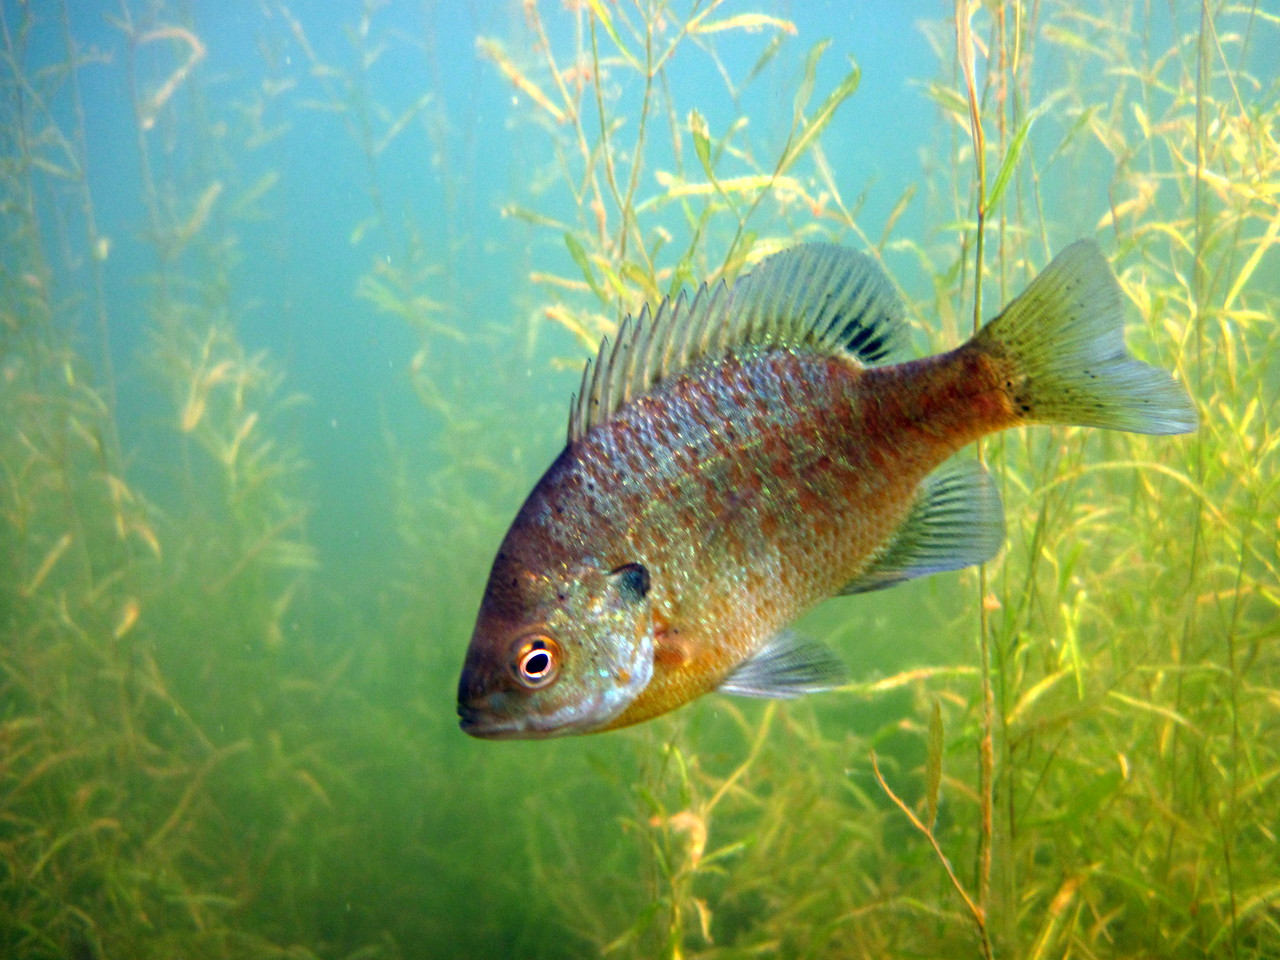 Researchers think sunfish species (like bluegill) are helping keep rusty crayfish populations in check by feeding heavily on the larvae of the invader.